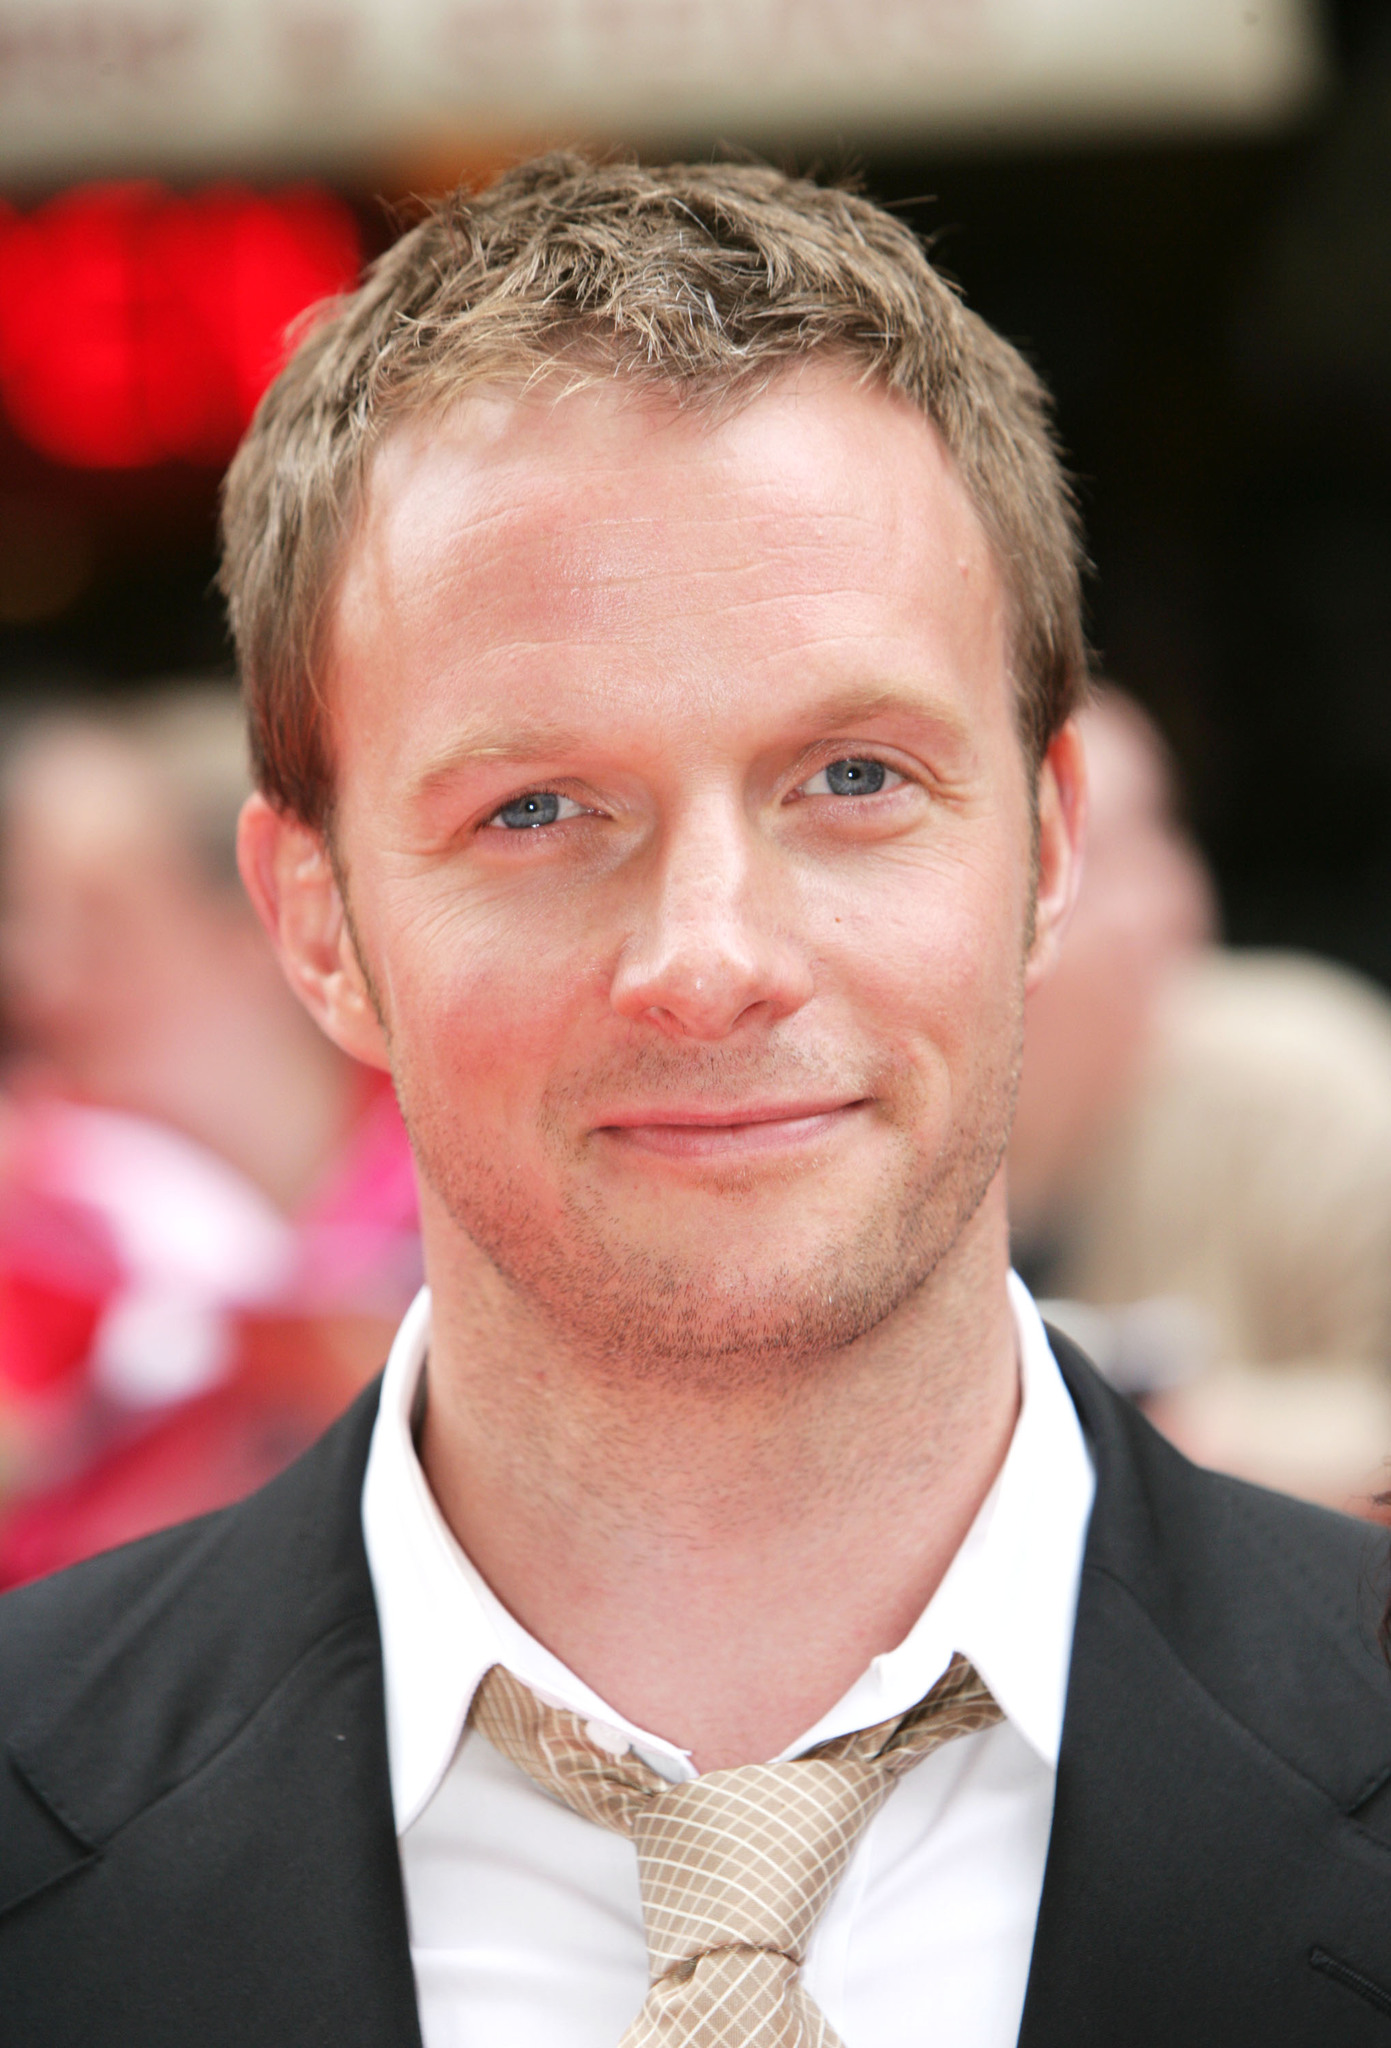 Boobs Rupert Penry-Jones (born 1970) naked photo 2017